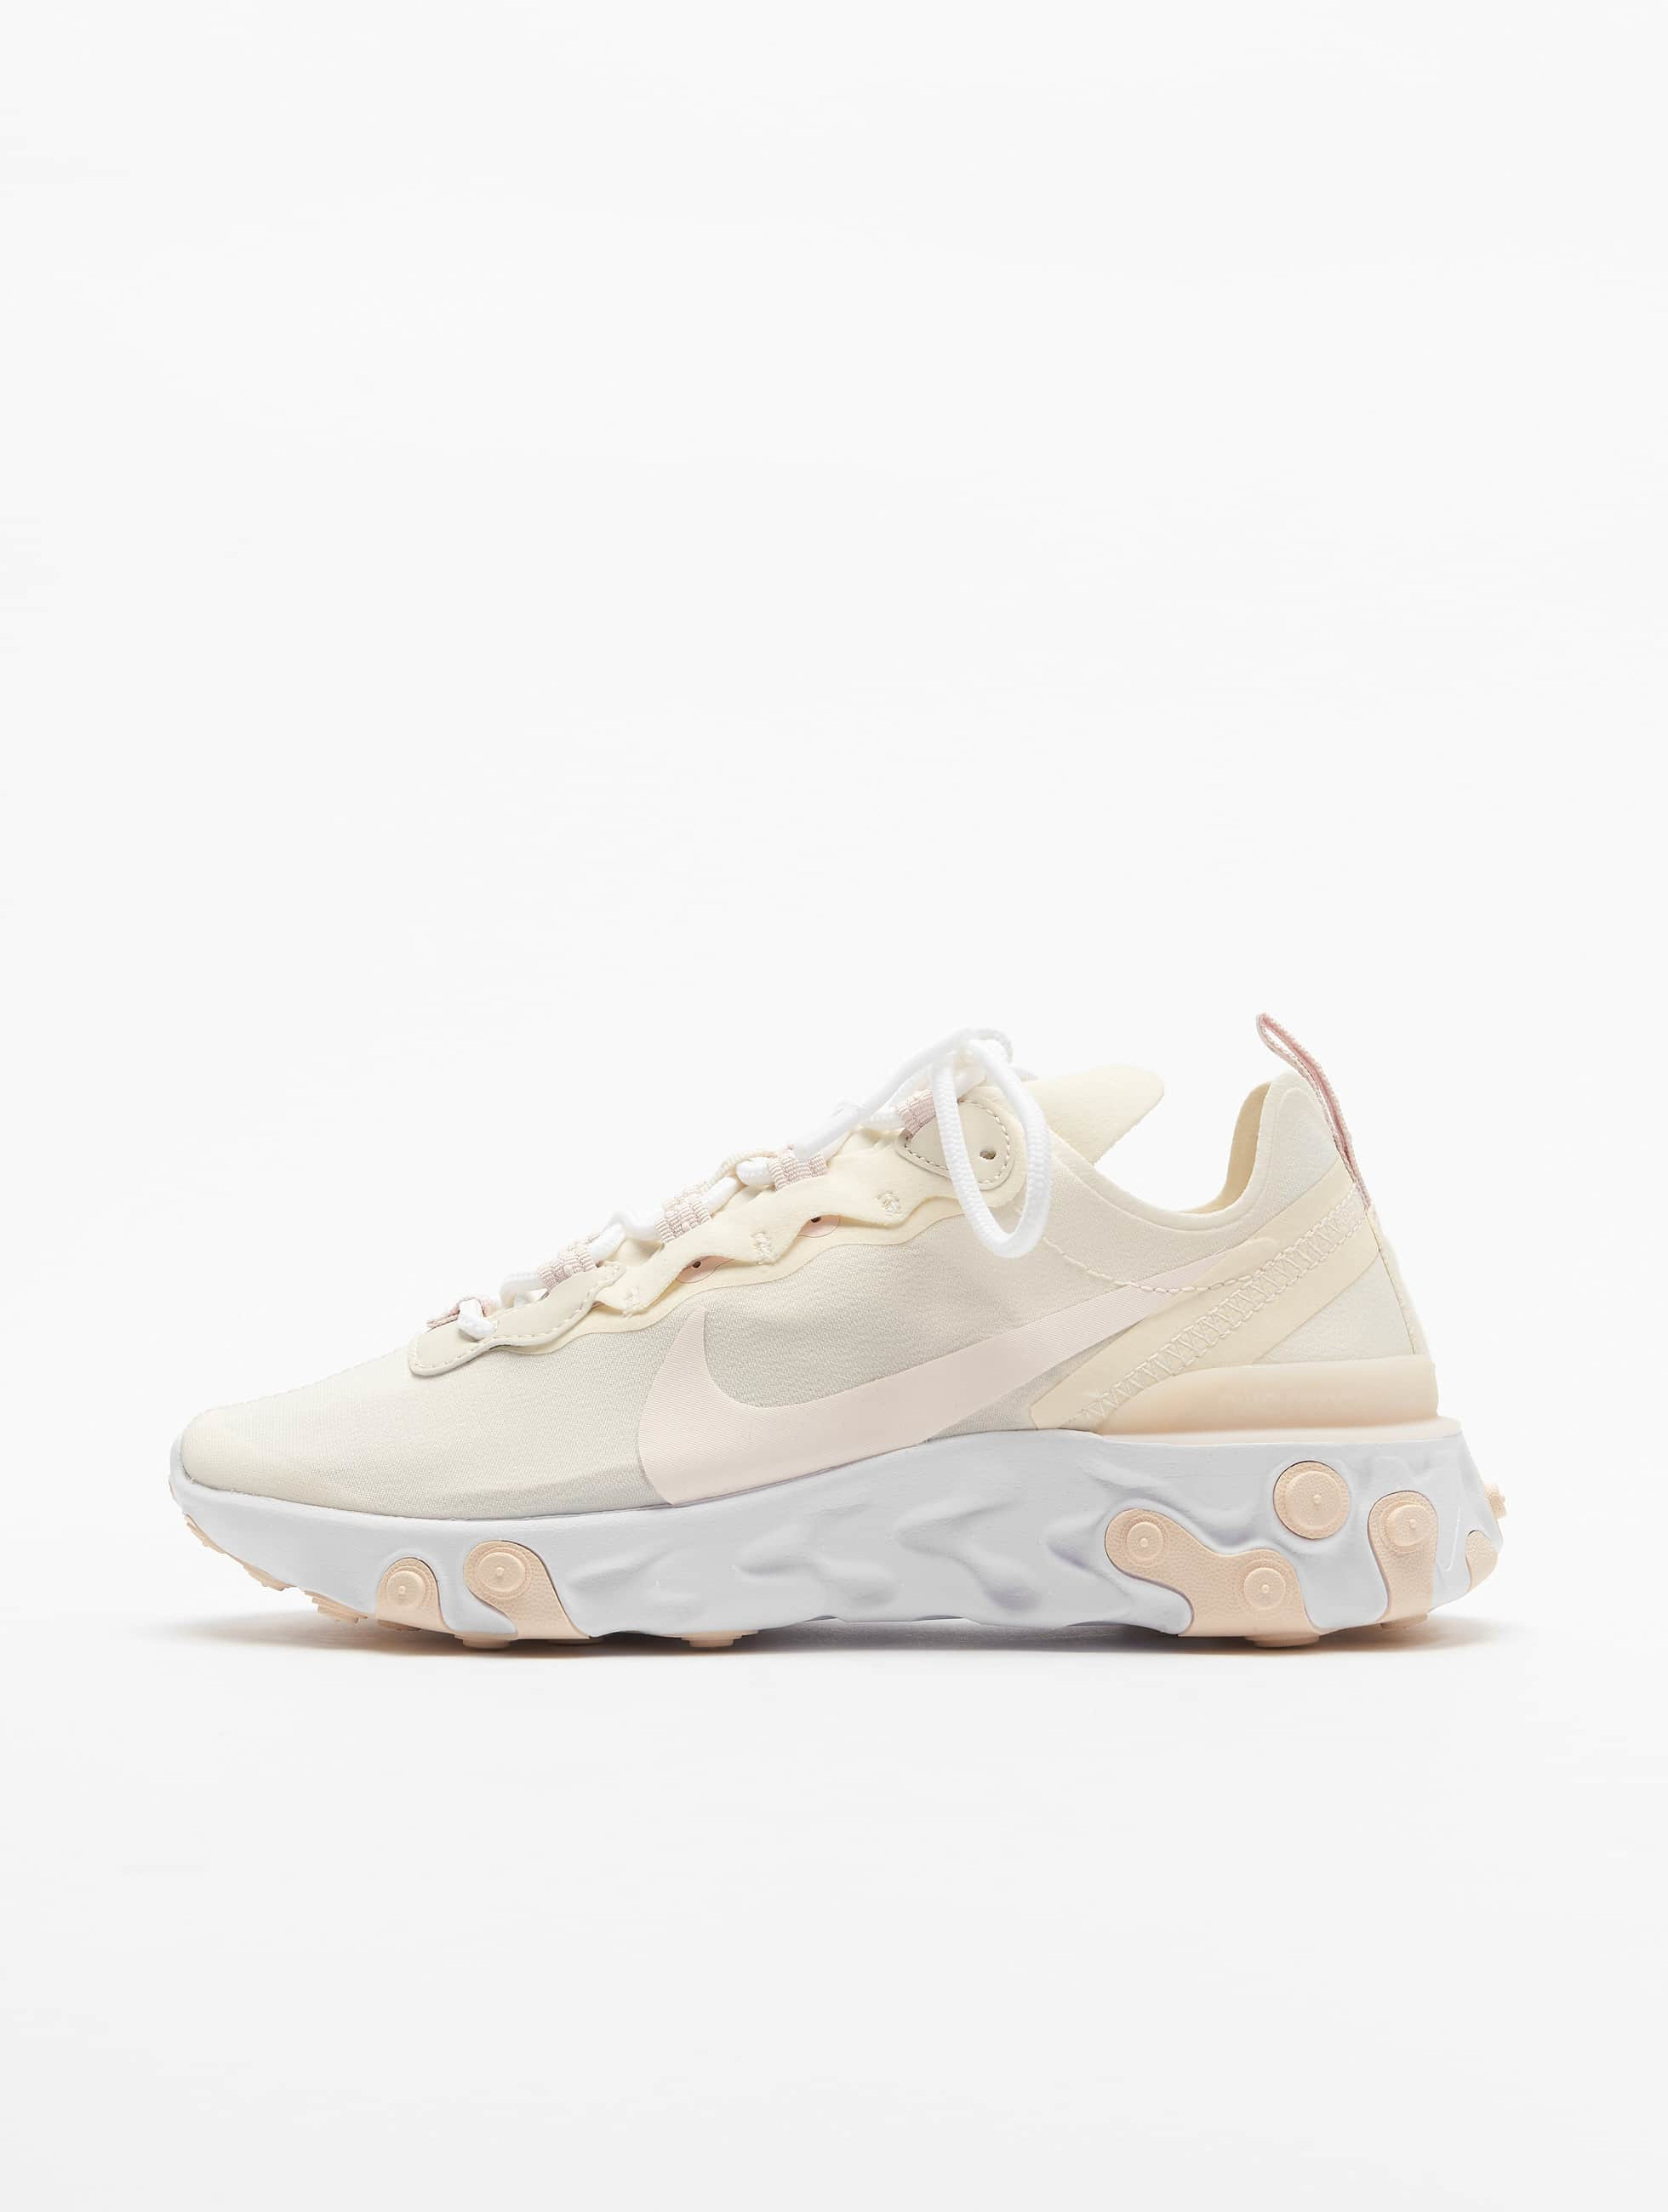 Nike React Element 55 Sneakers Pale IvoryLight Soft PinkWhite